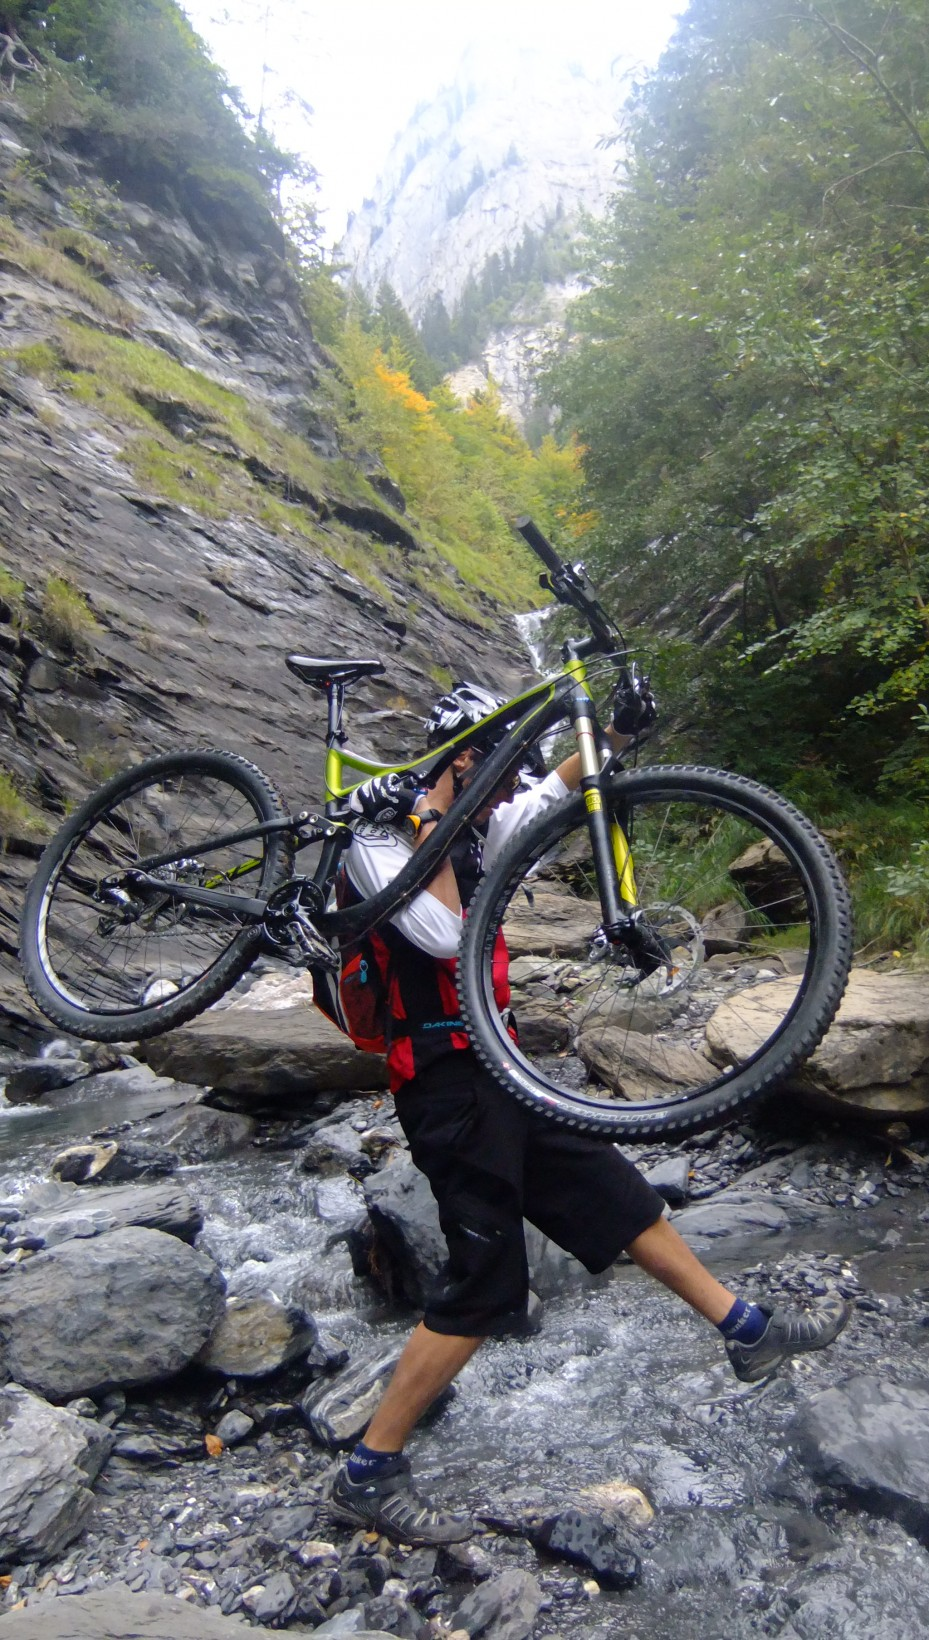 River crossings just add to the fun